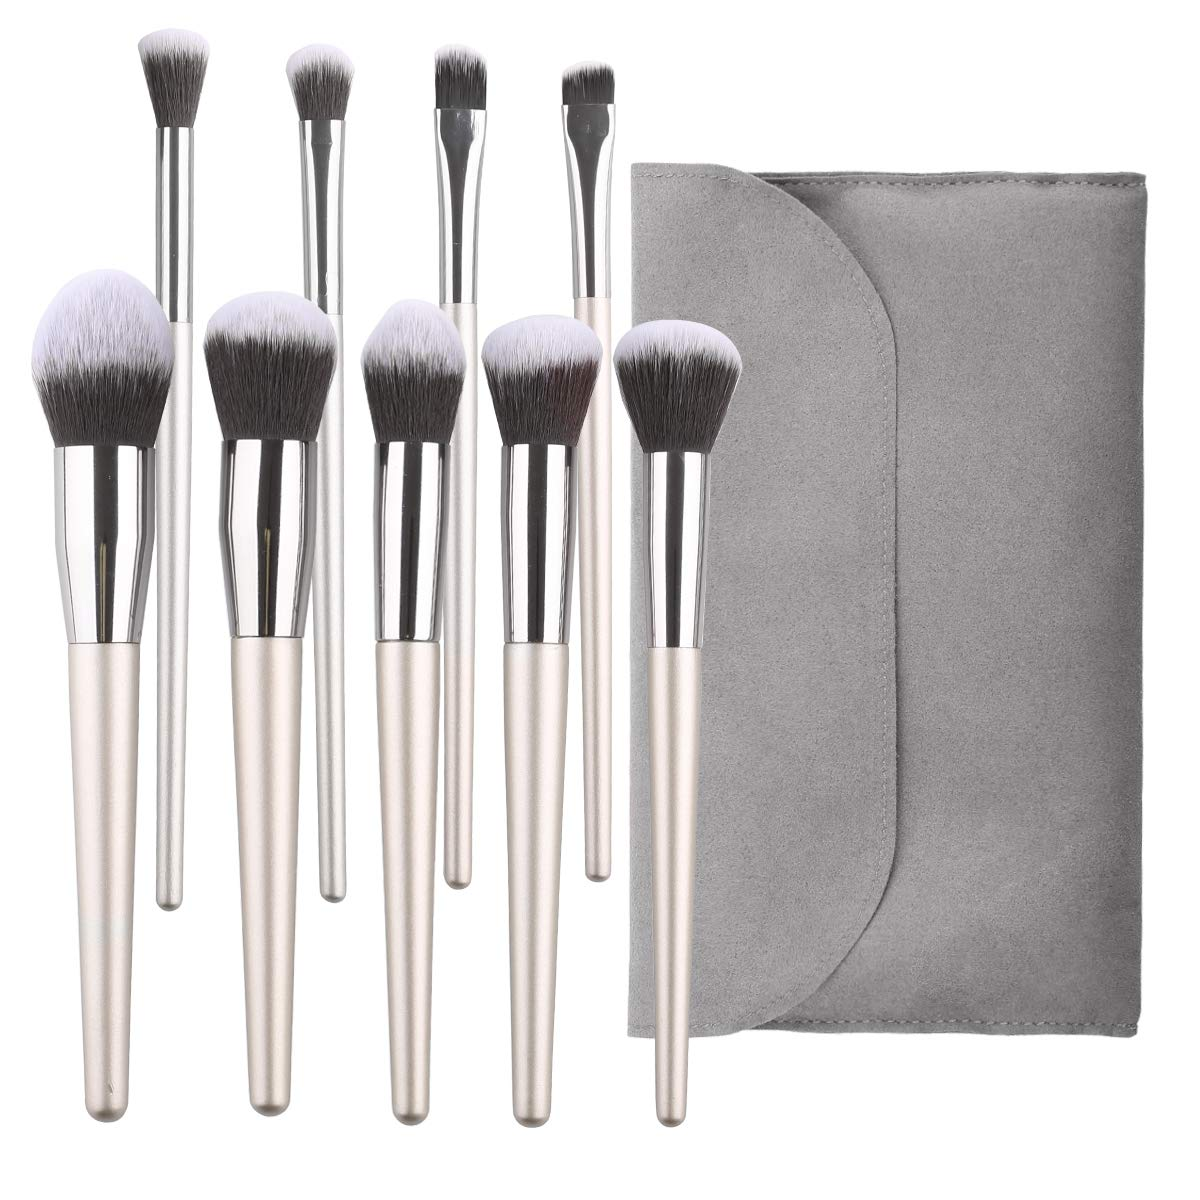 Cosmetic Brushes Set 9 PCs Brush Kit Foundation Powder Concealers Eyeshadows Makeup Brush